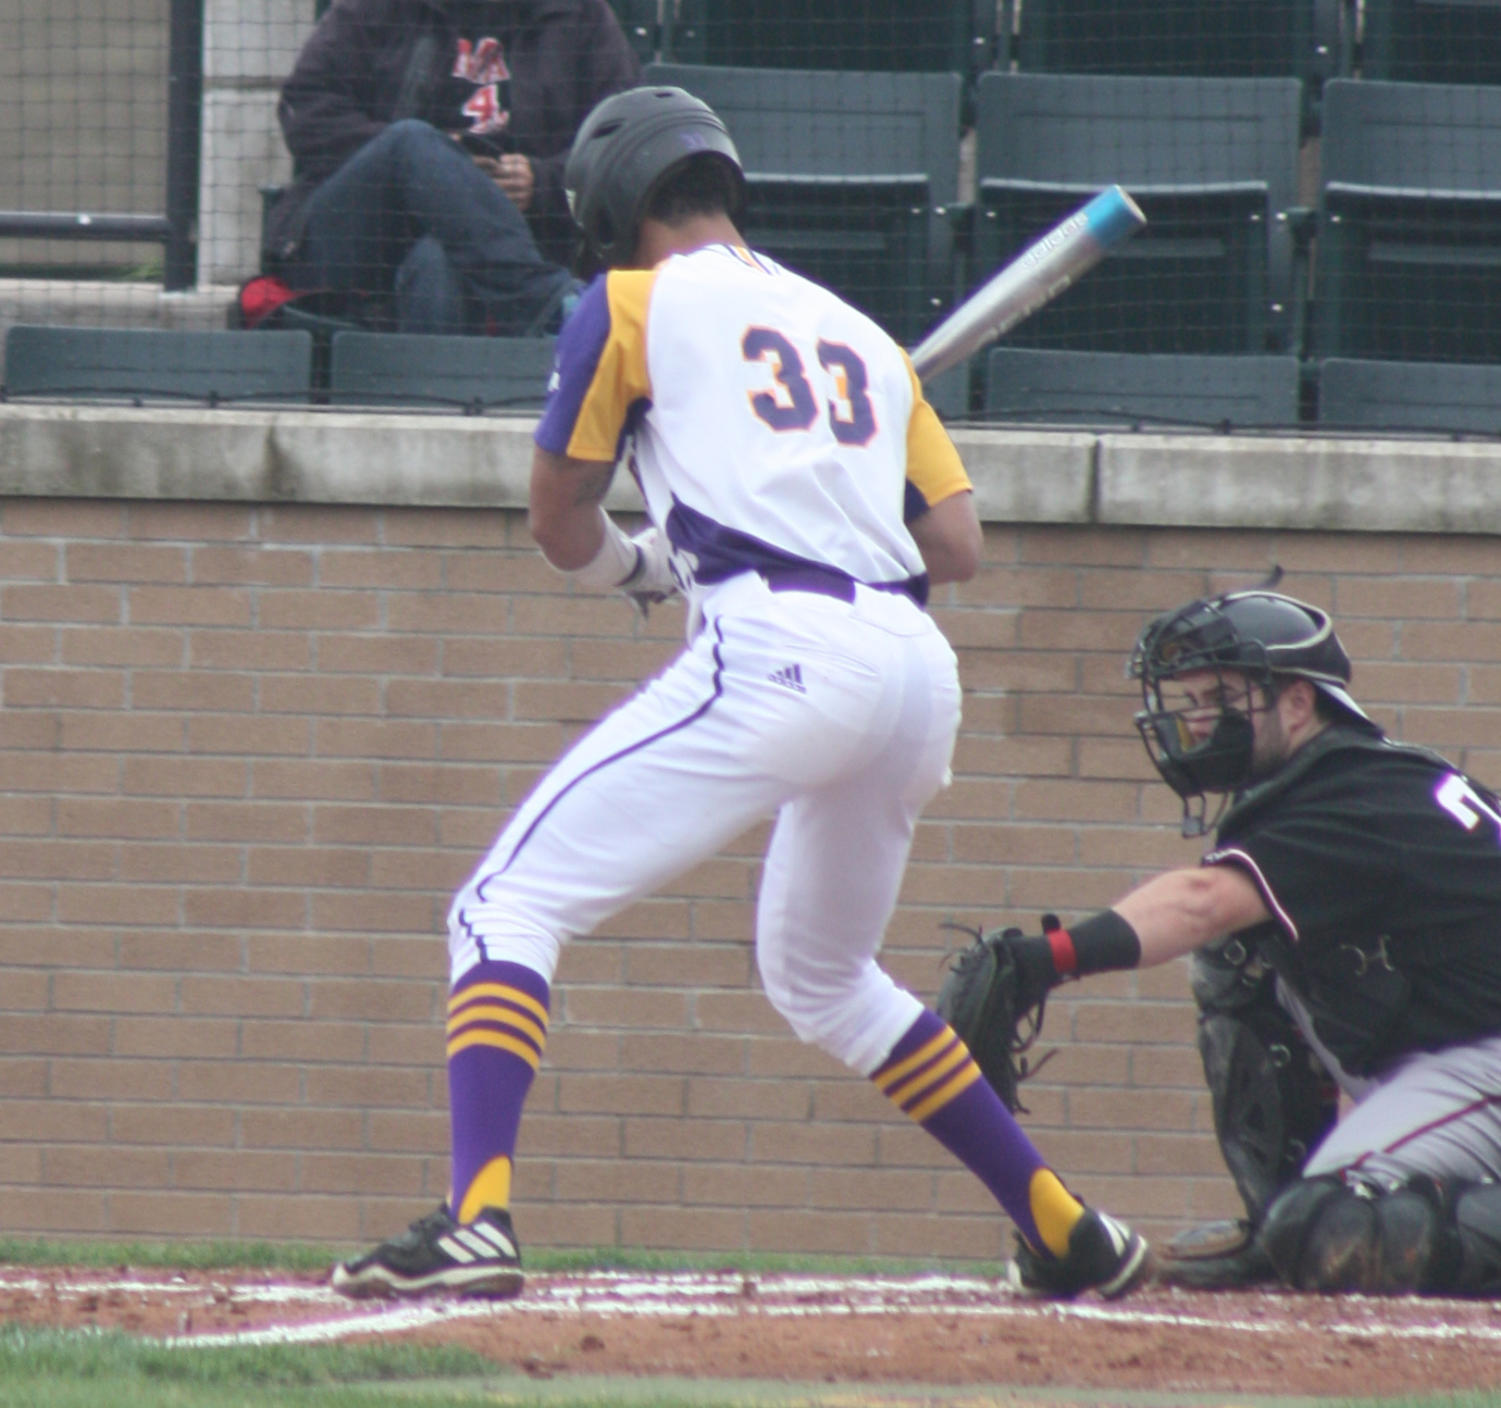 Deion Thompson up to the plate at Alfred D. Boyer Stadium.